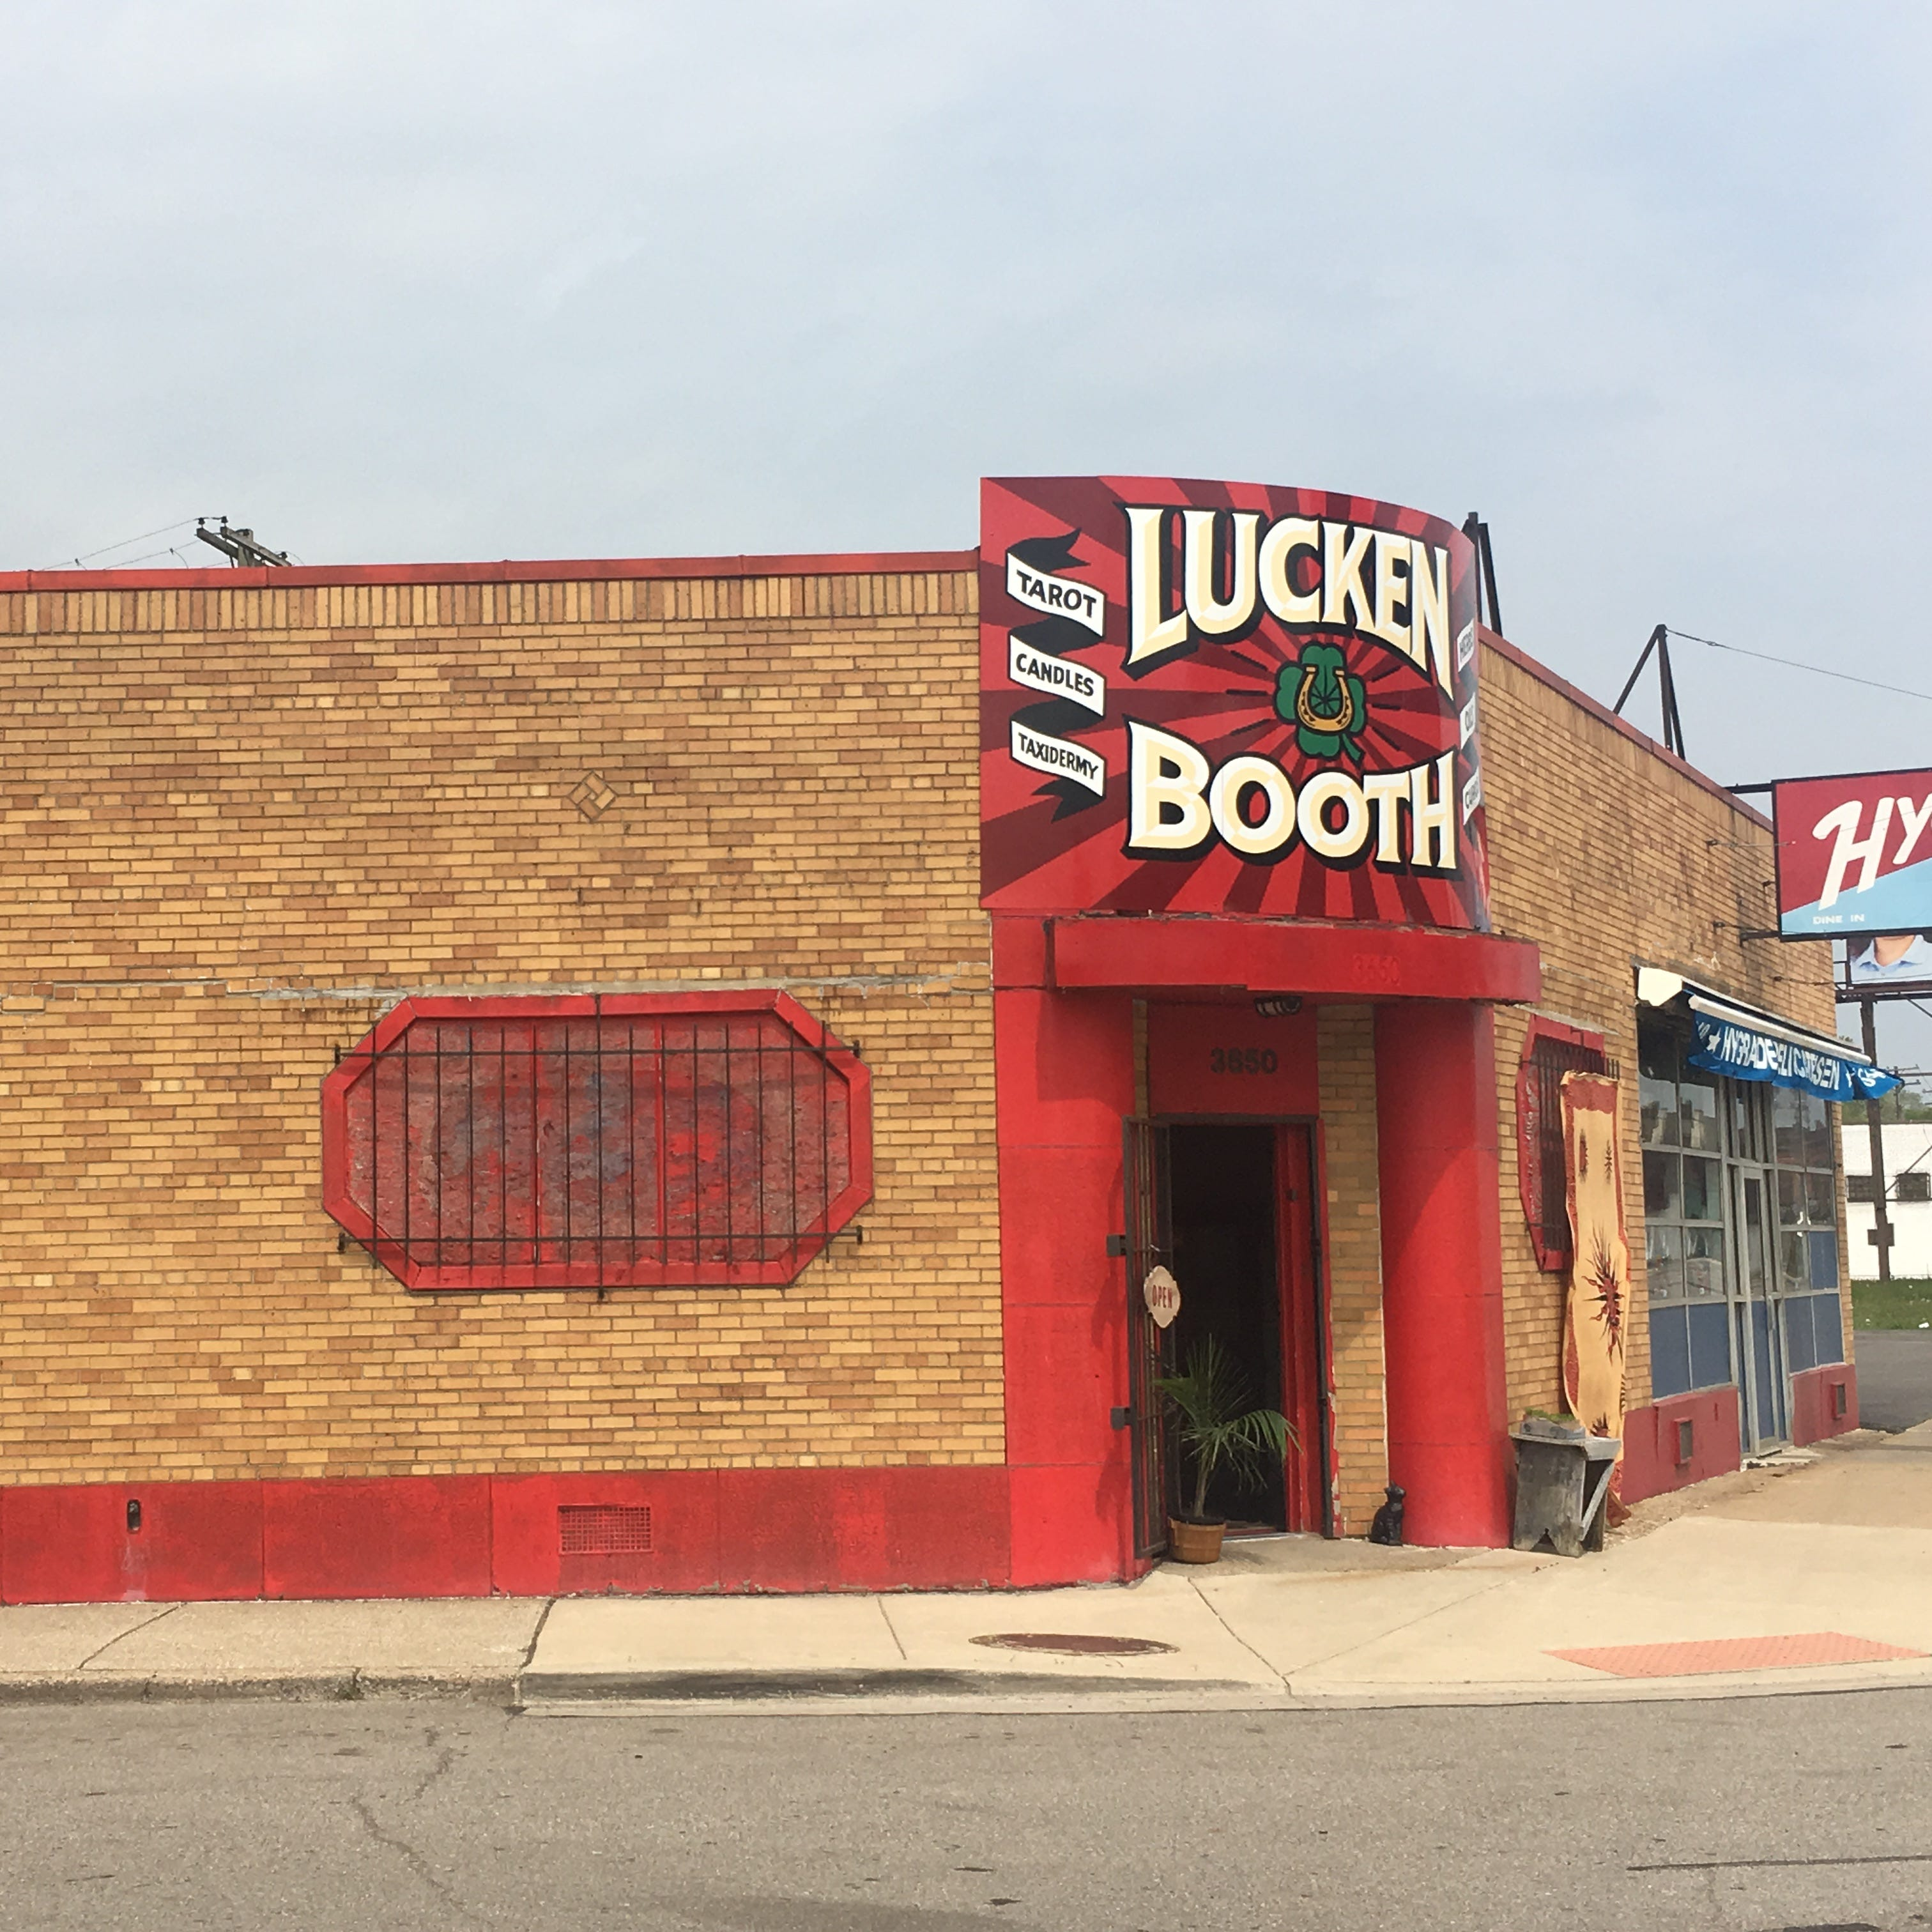 New Detroit store has psychic readings, raccoon penis bones